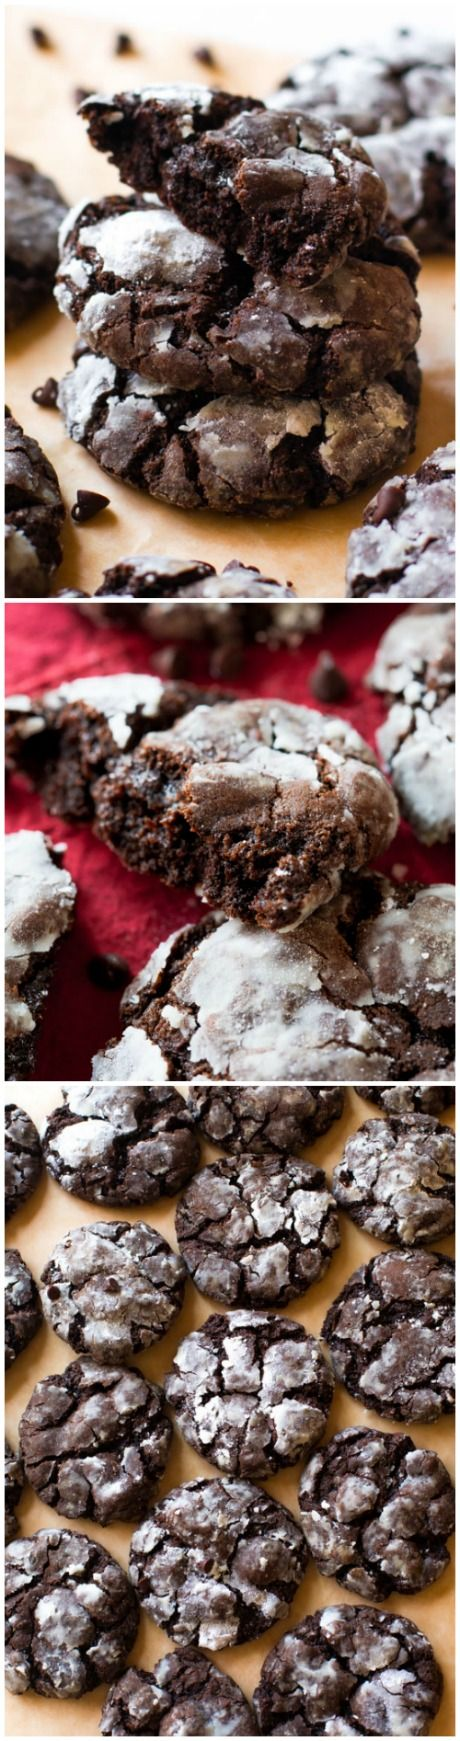 DOUBLE chocolate crinkle cookies that bake up wonderfully soft, chewy, and extra thick!